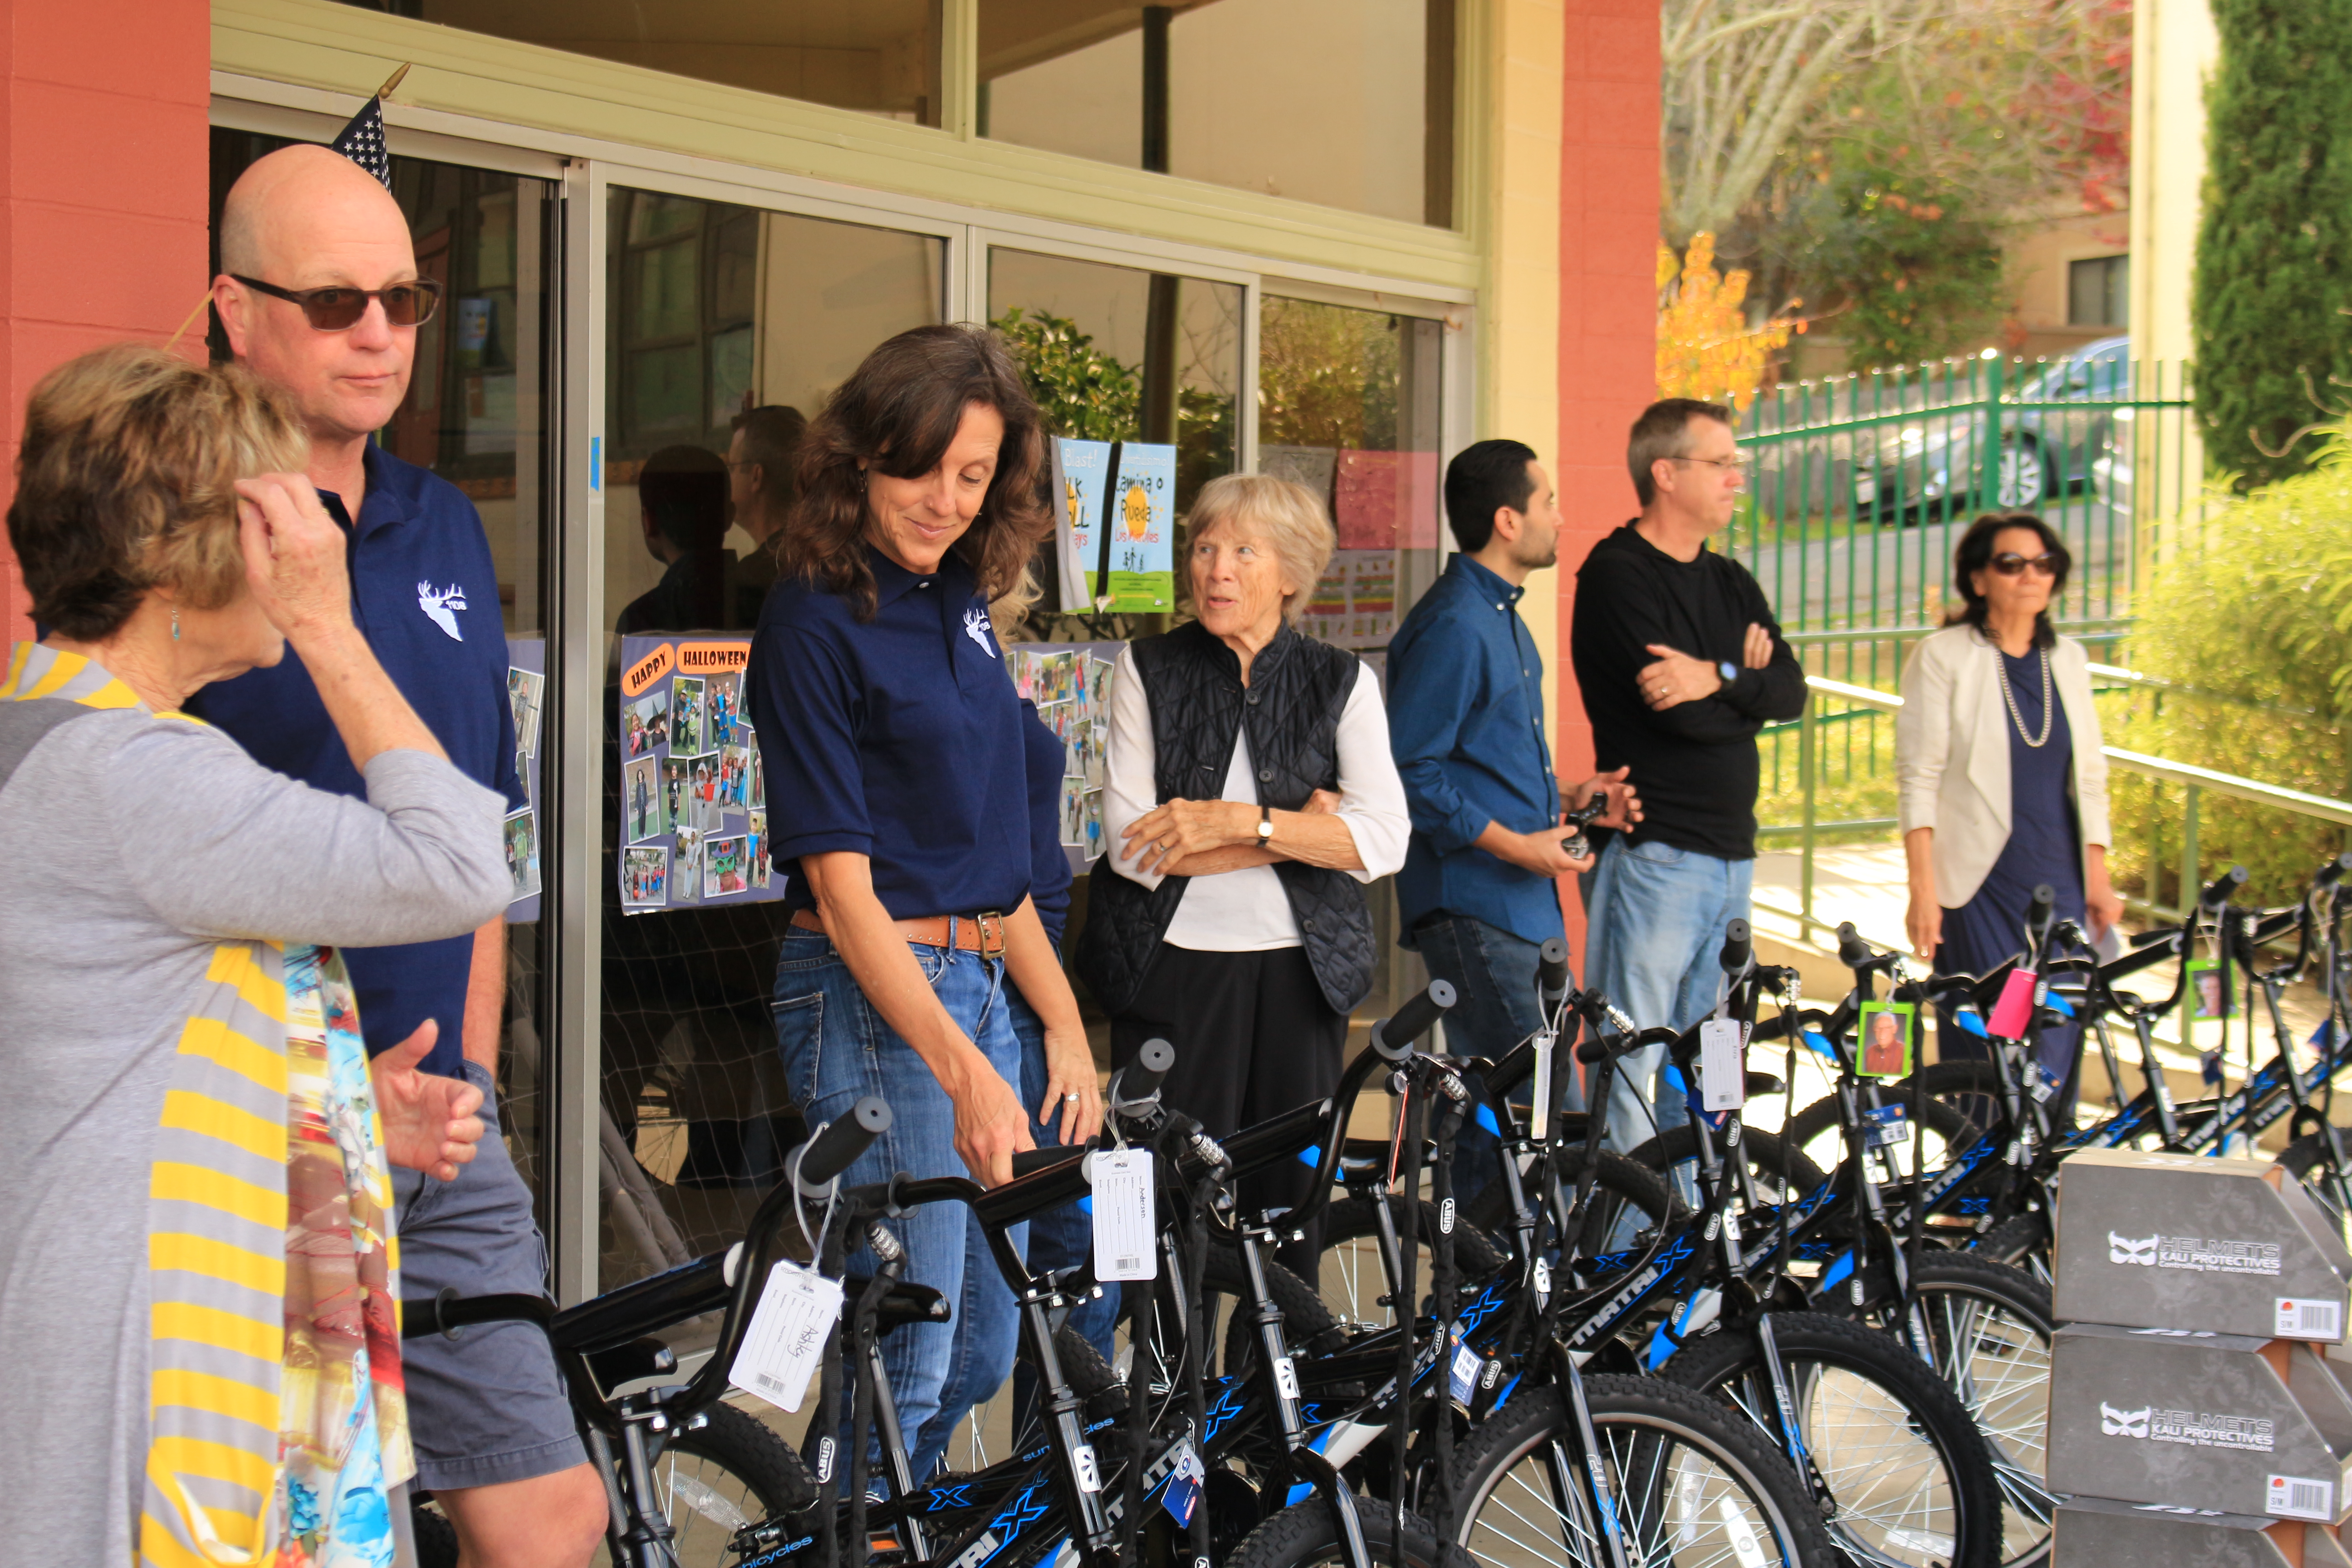 bicycle-donors-all-ready-to-make-the-announcements-nov-10-2016